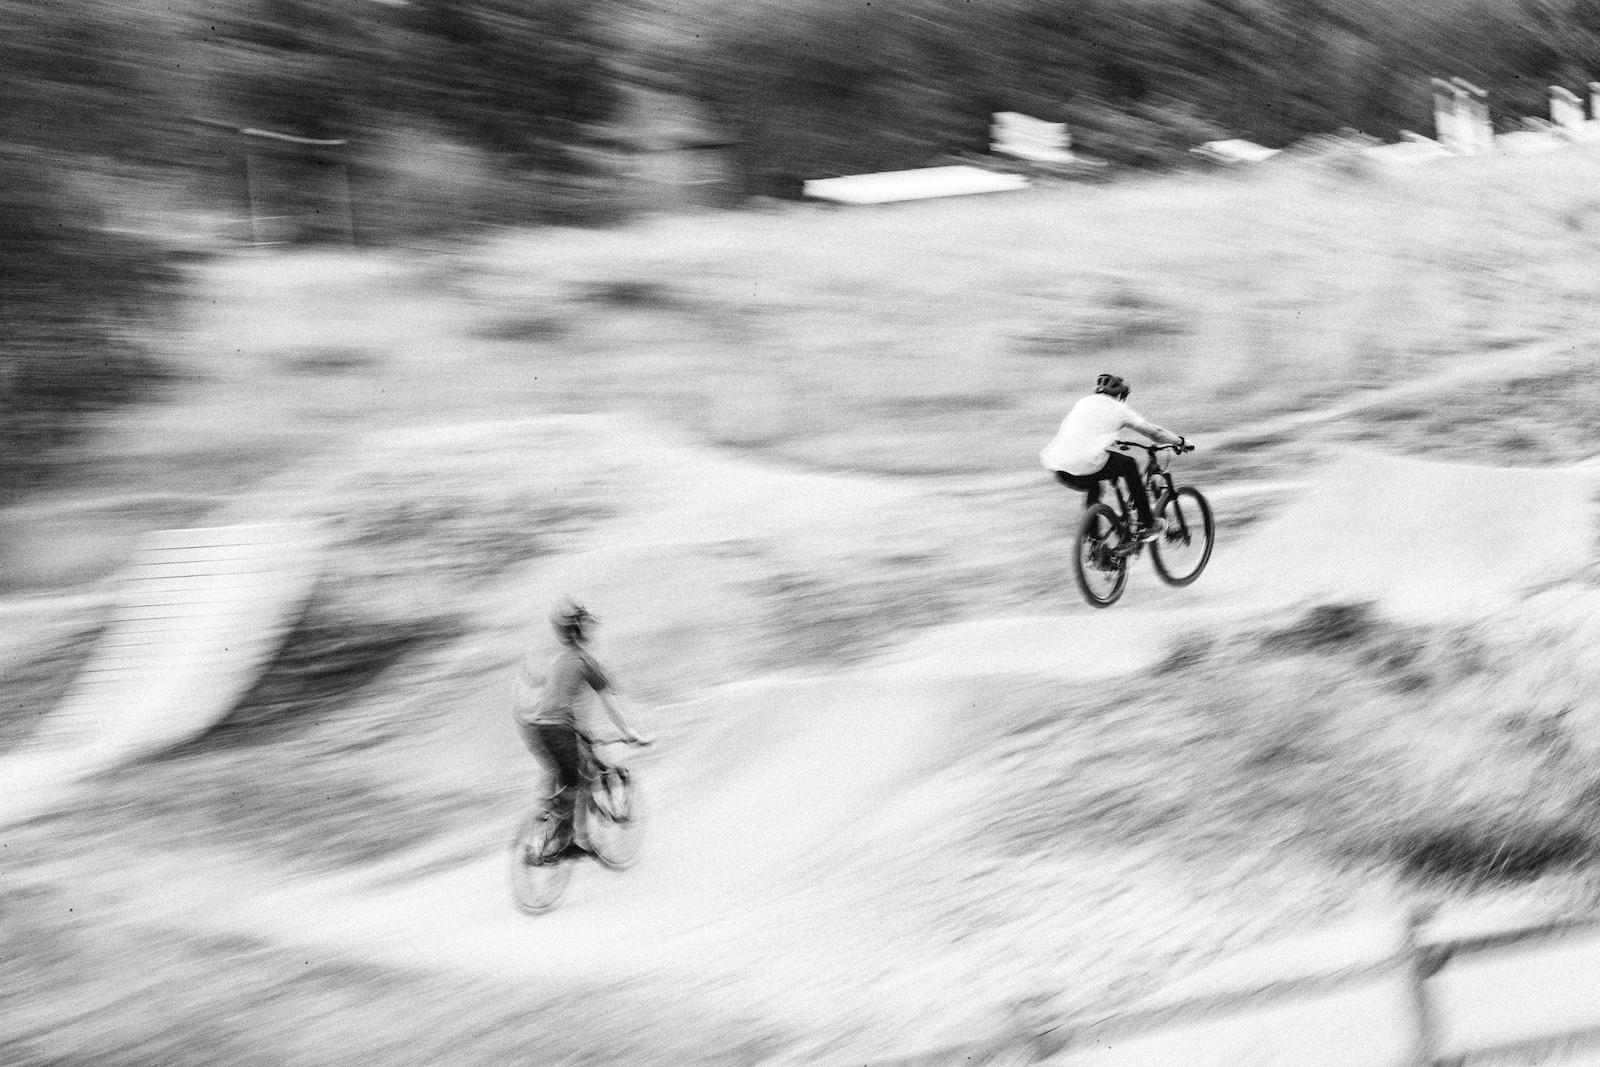 The Boise Bike park has quickly become a hub for riders in Boise.